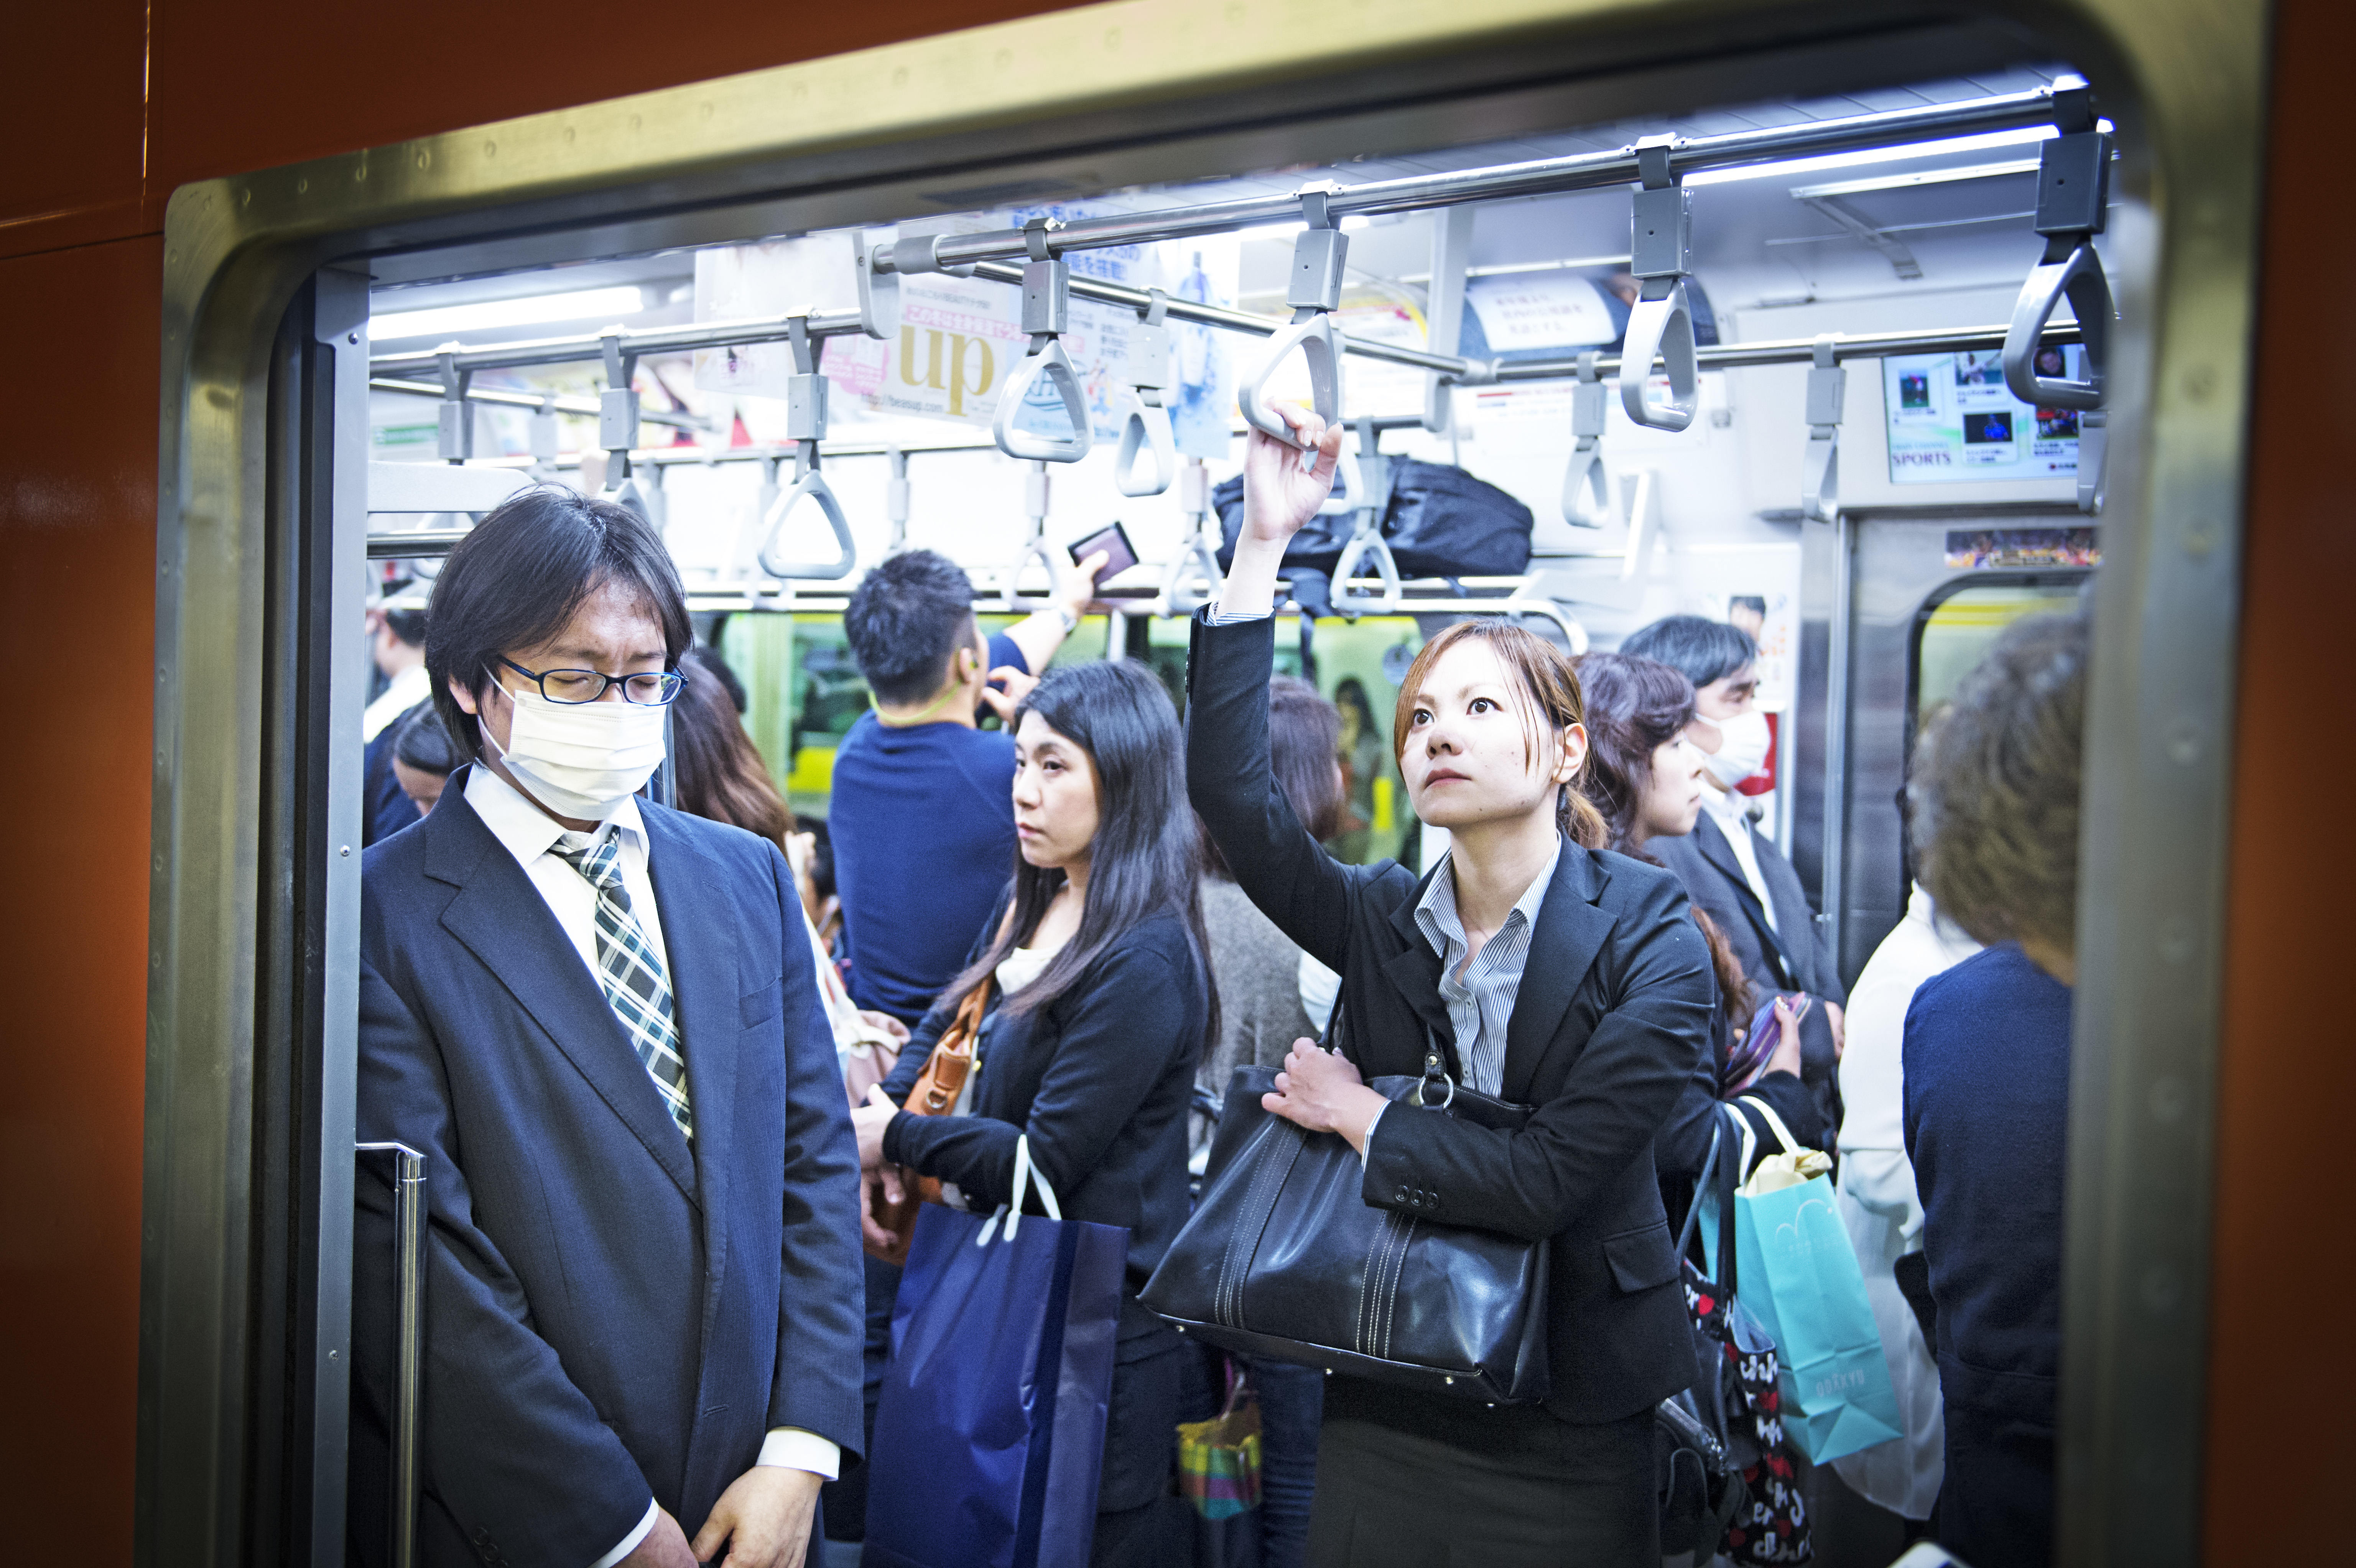 Japanese train company issues official apology for